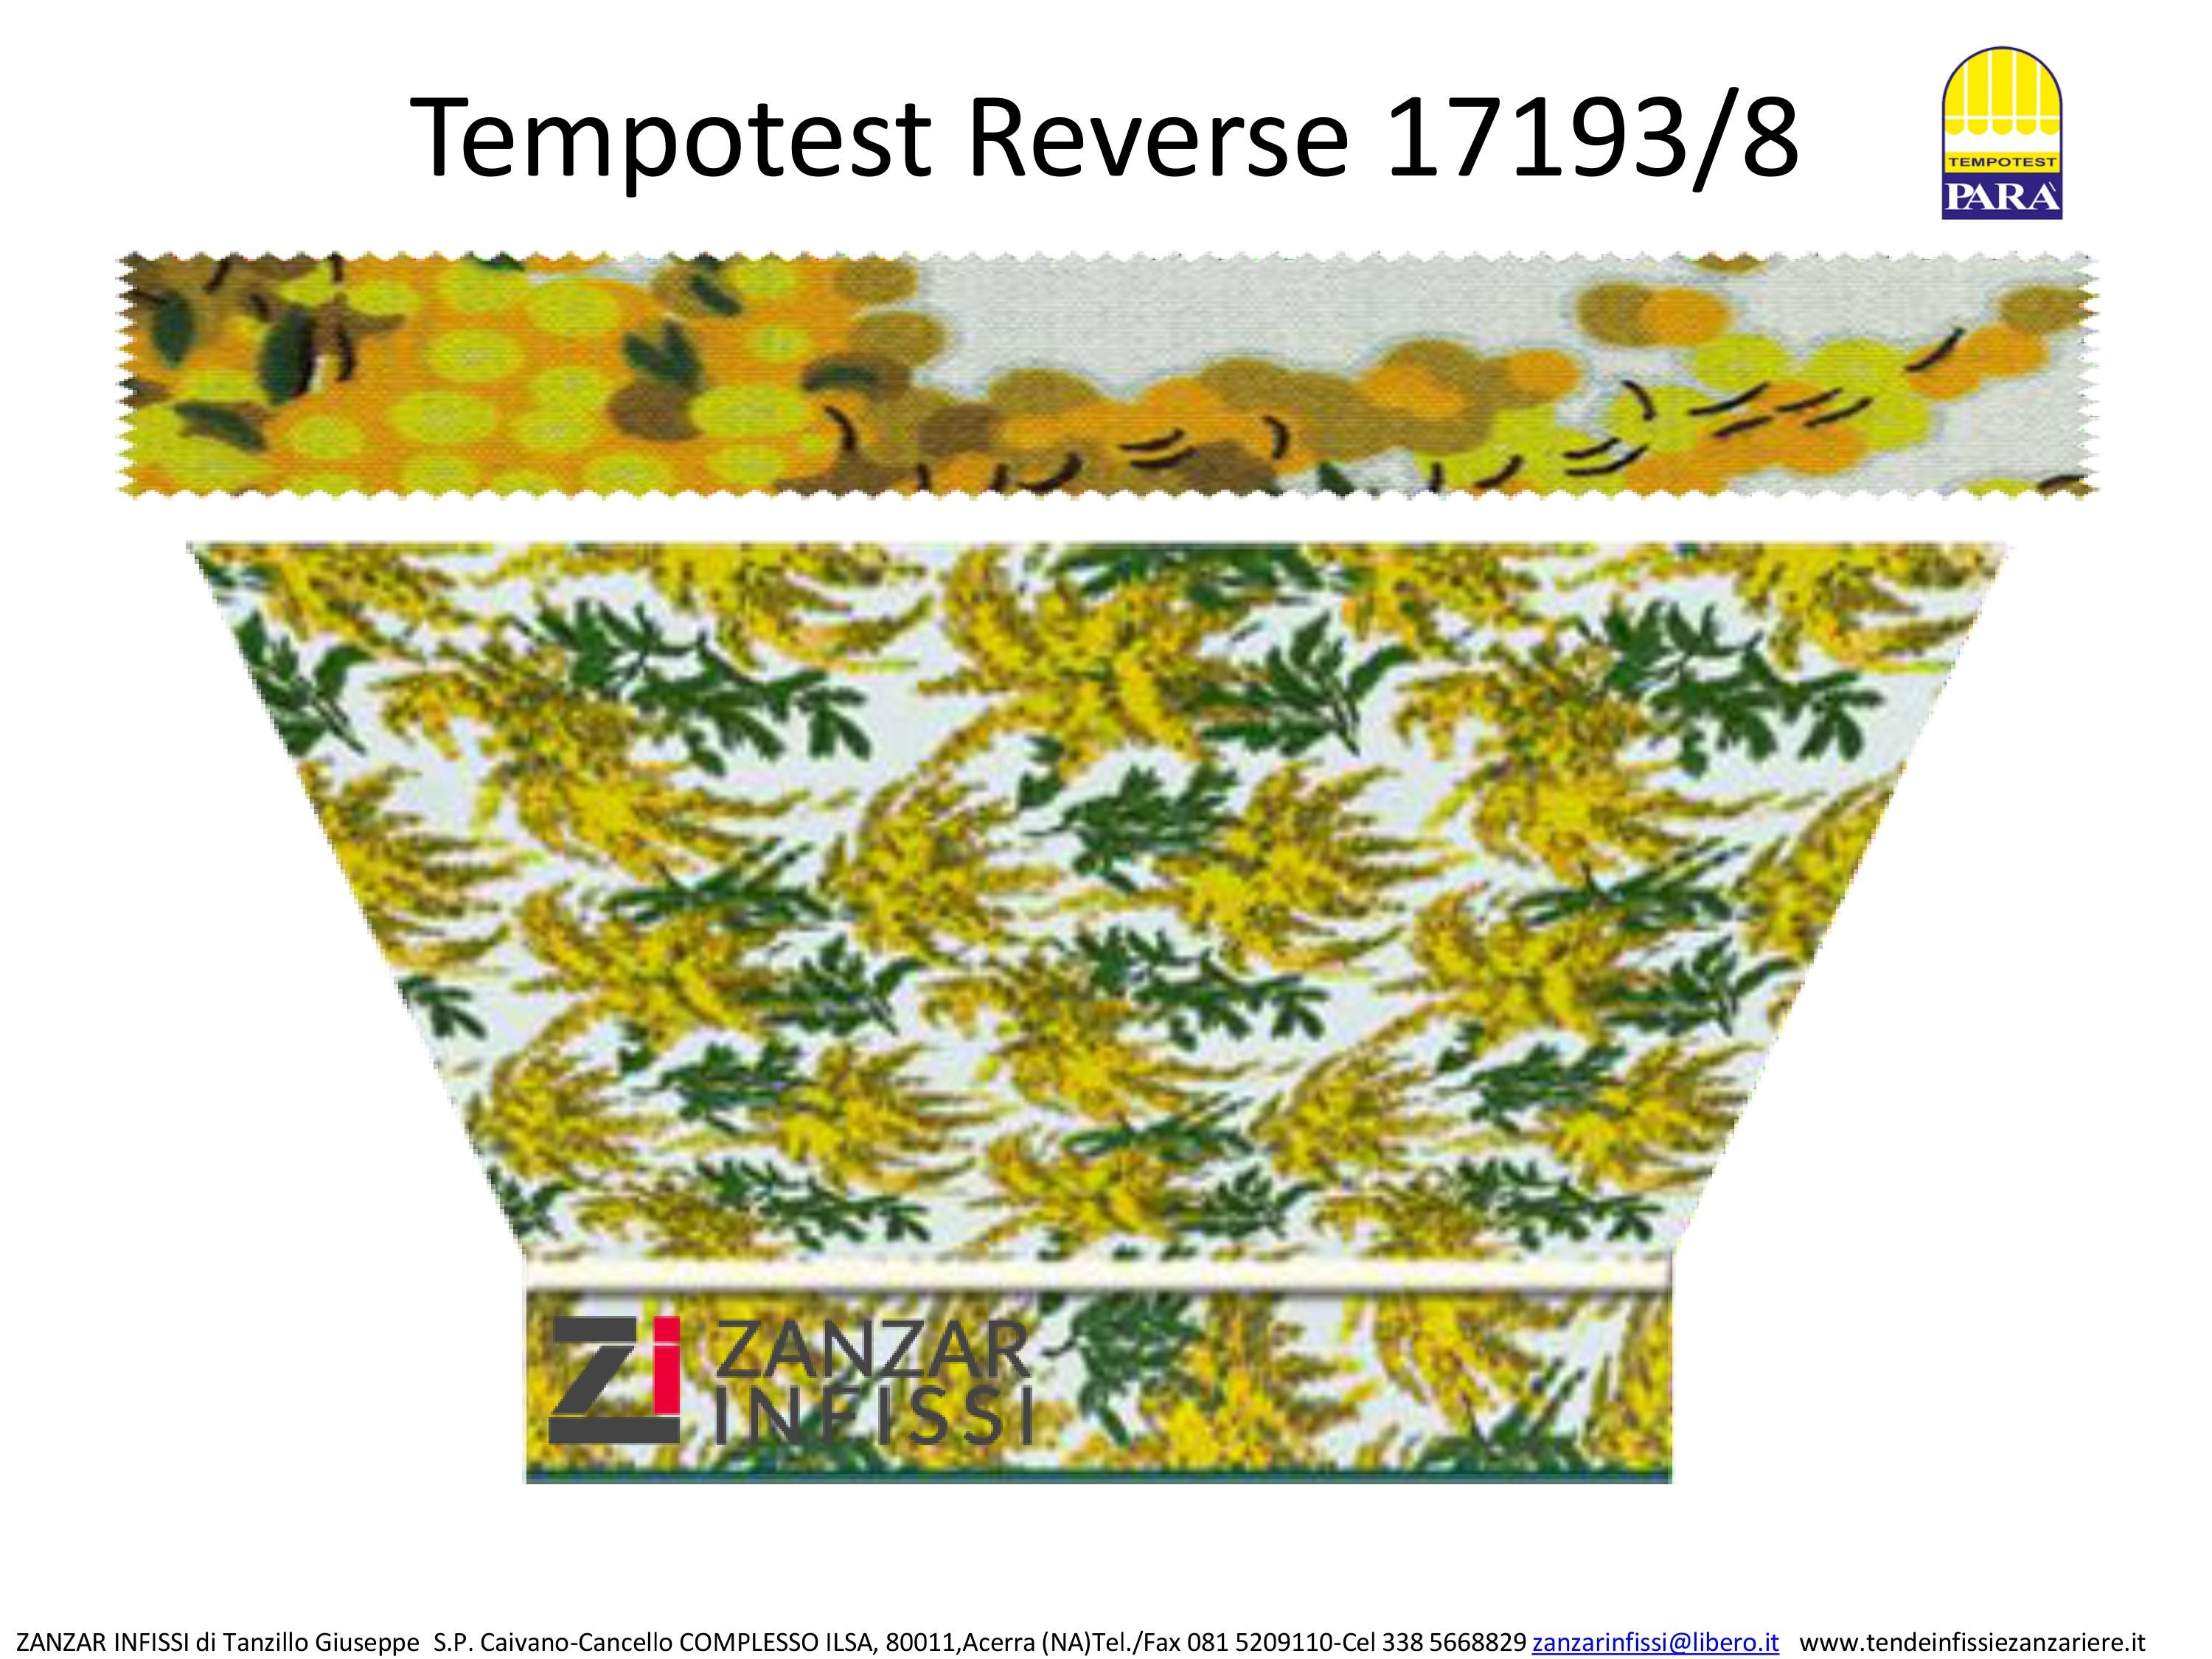 Tempotest reverse 17193/8